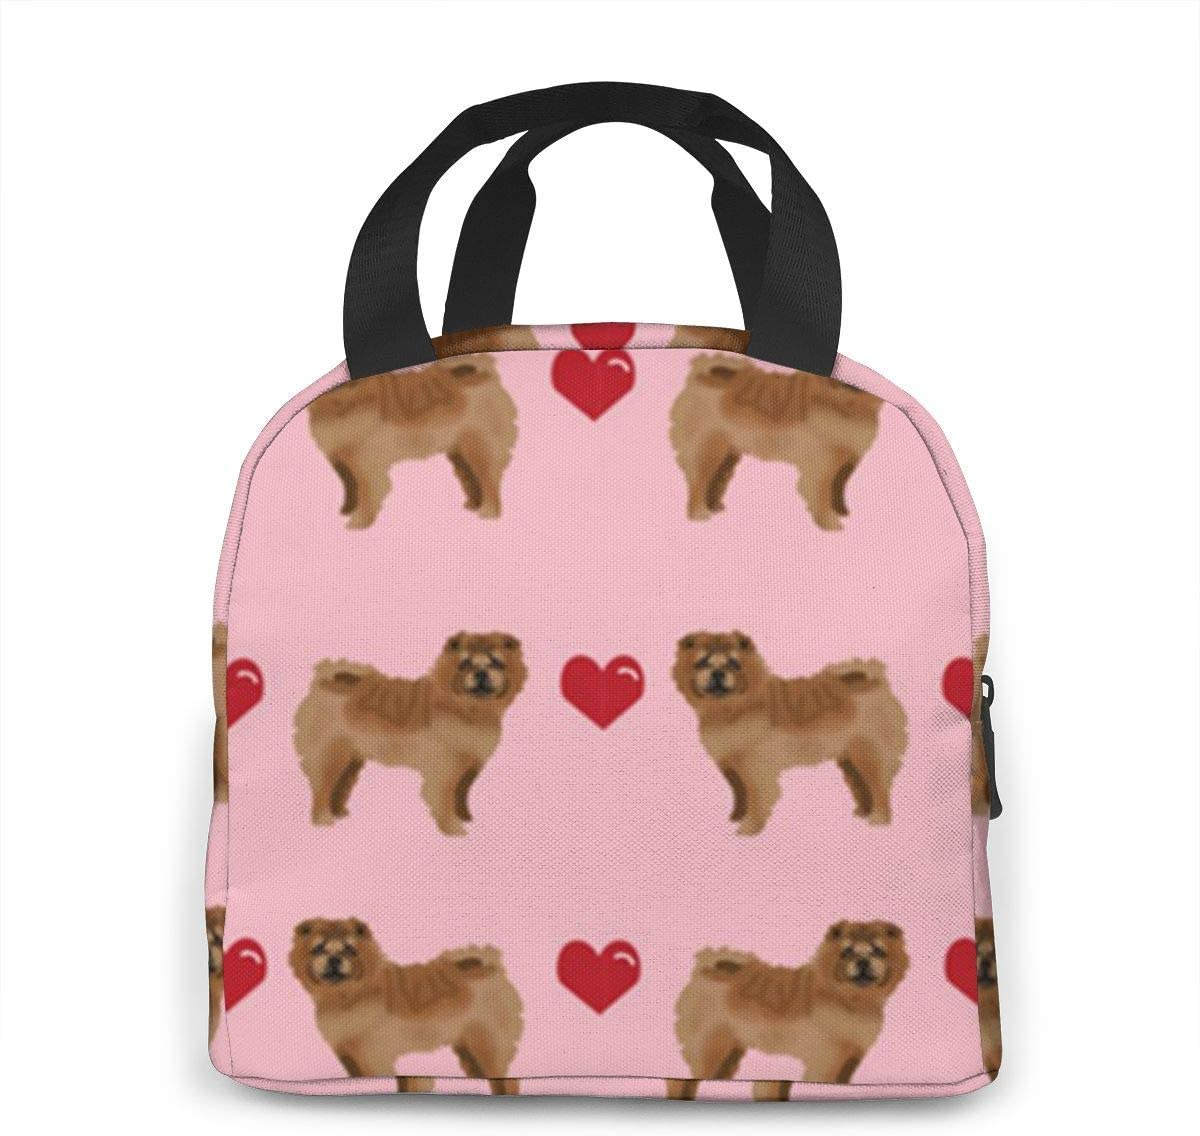 FZDB Chow Love Hearts Dog Lunch Bag in neoprene Lunch Box coibentato Borsa da pranzo impermeabile leggera Borsa termica con chiusura a zip per donna Uomo e bambino